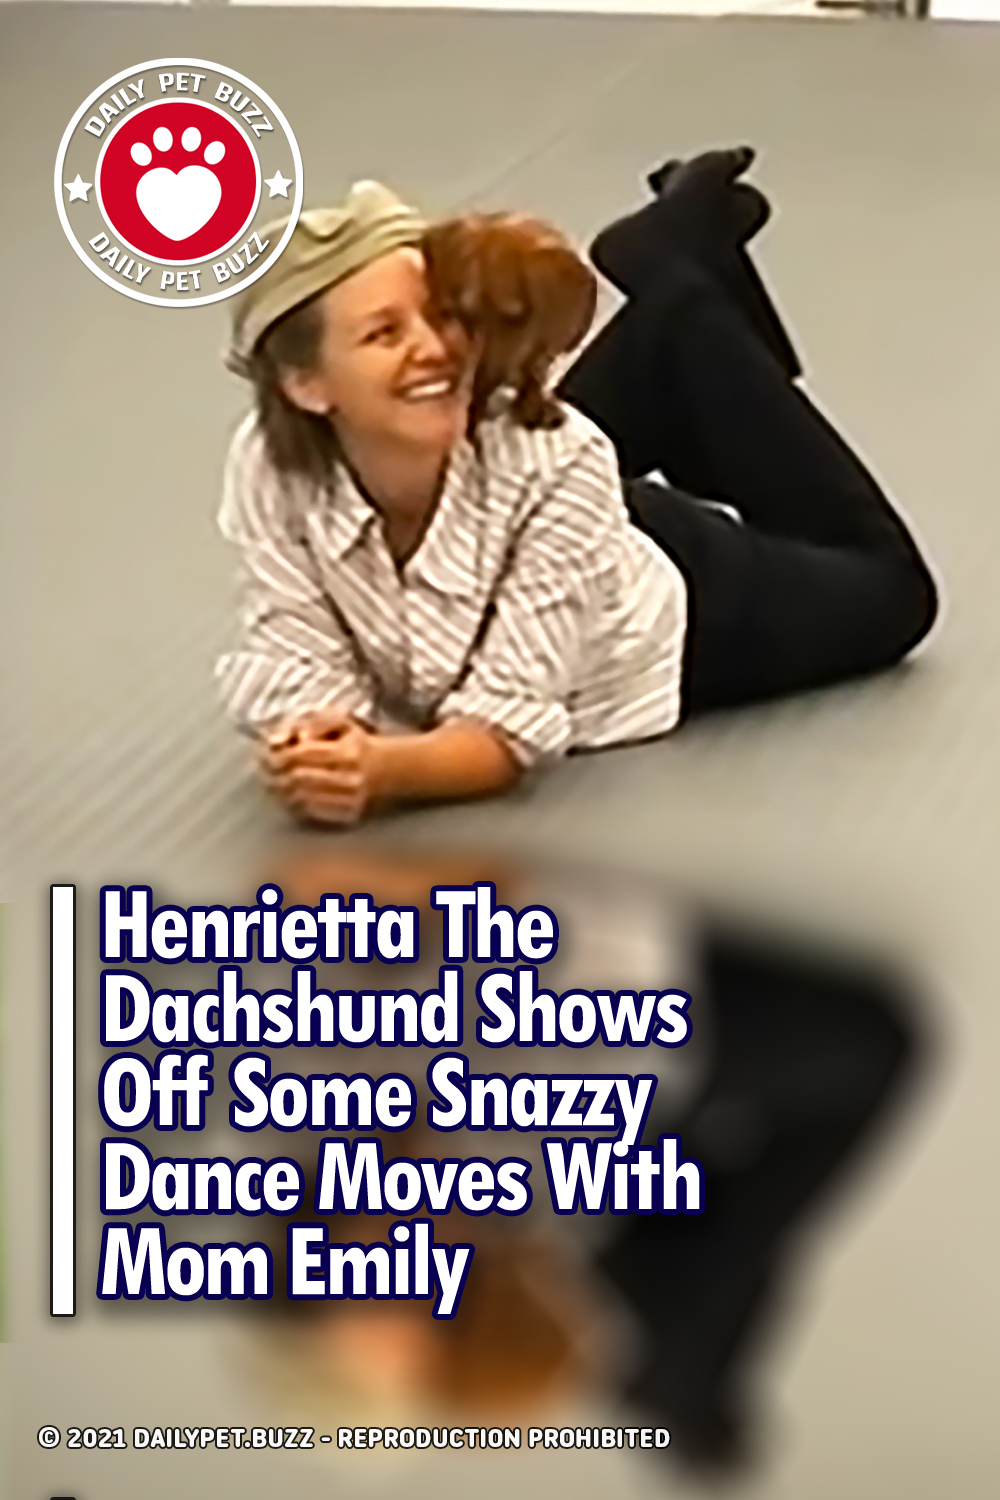 Henrietta The Dachshund Shows Off Some Snazzy Dance Moves With Mom Emily